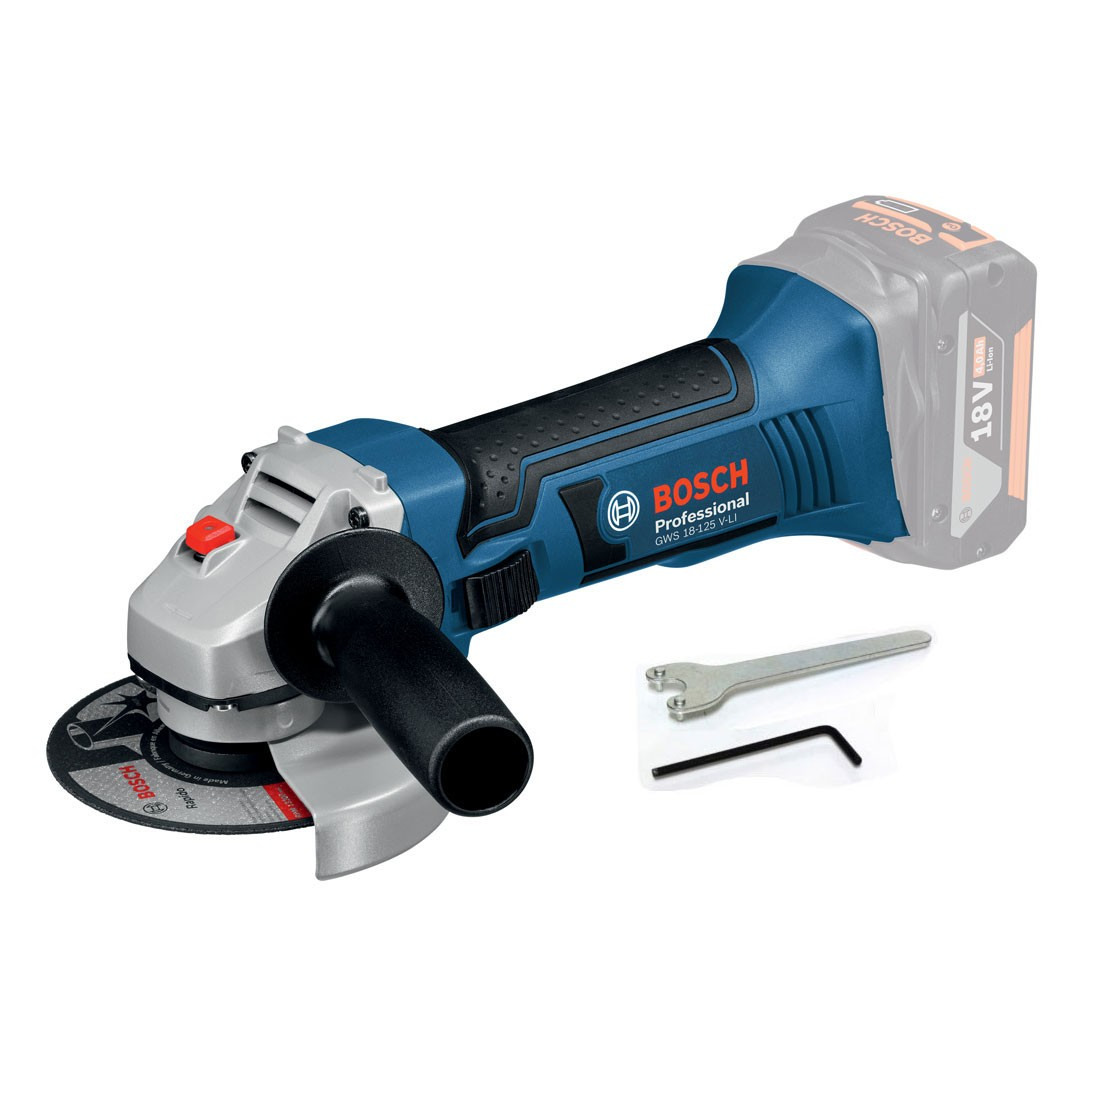 bosch gws 18 125 v li professional angle grinder body only in carton powertool world. Black Bedroom Furniture Sets. Home Design Ideas